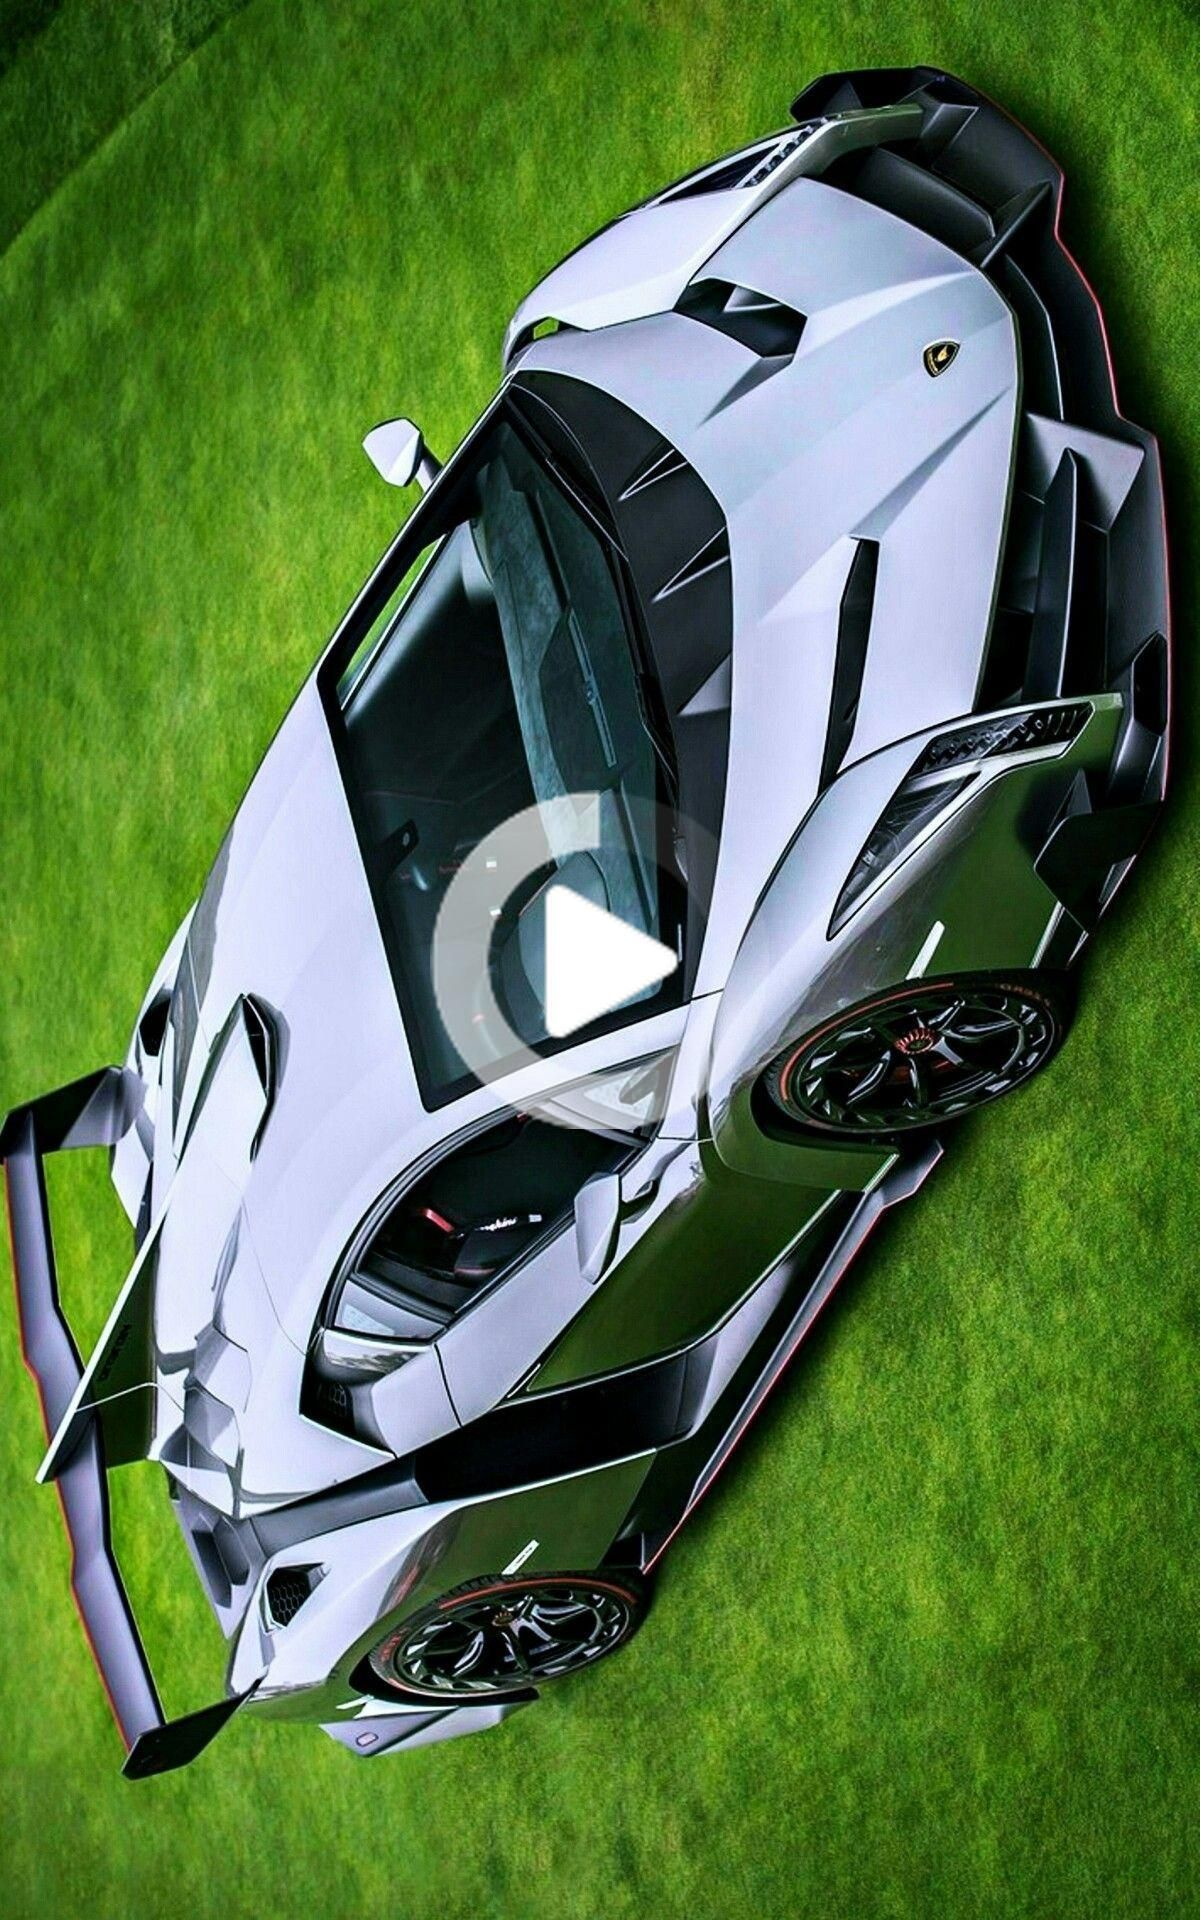 Lamborghini Veneno Here Is A Collection Of Cool Nice Super Expensive And Racing Cars Cool In 2020 Fast Sports Cars Cool Sports Cars Super Cars